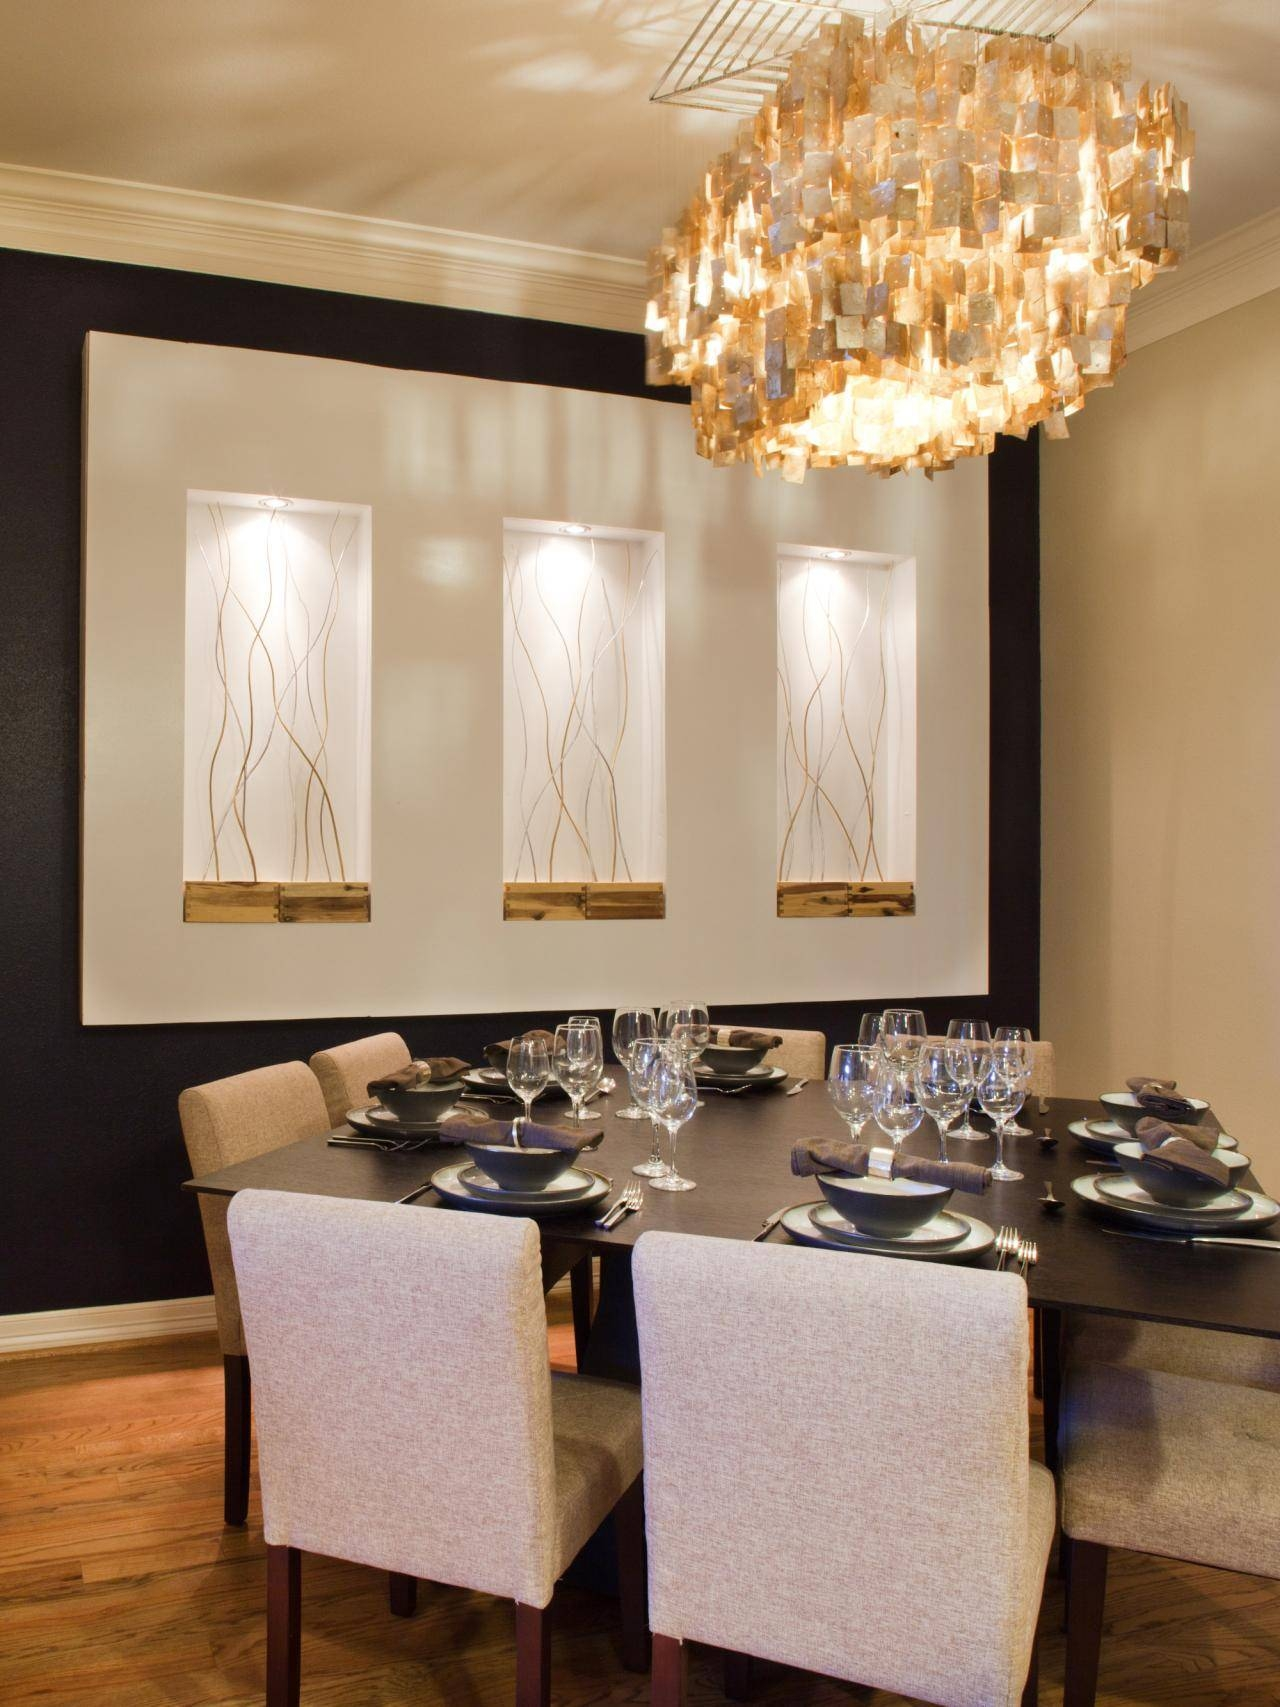 Modern Wall Art For Dining Room – Alliancemv Within Most Recently Released Modern Wall Art For Dining Room (View 14 of 15)